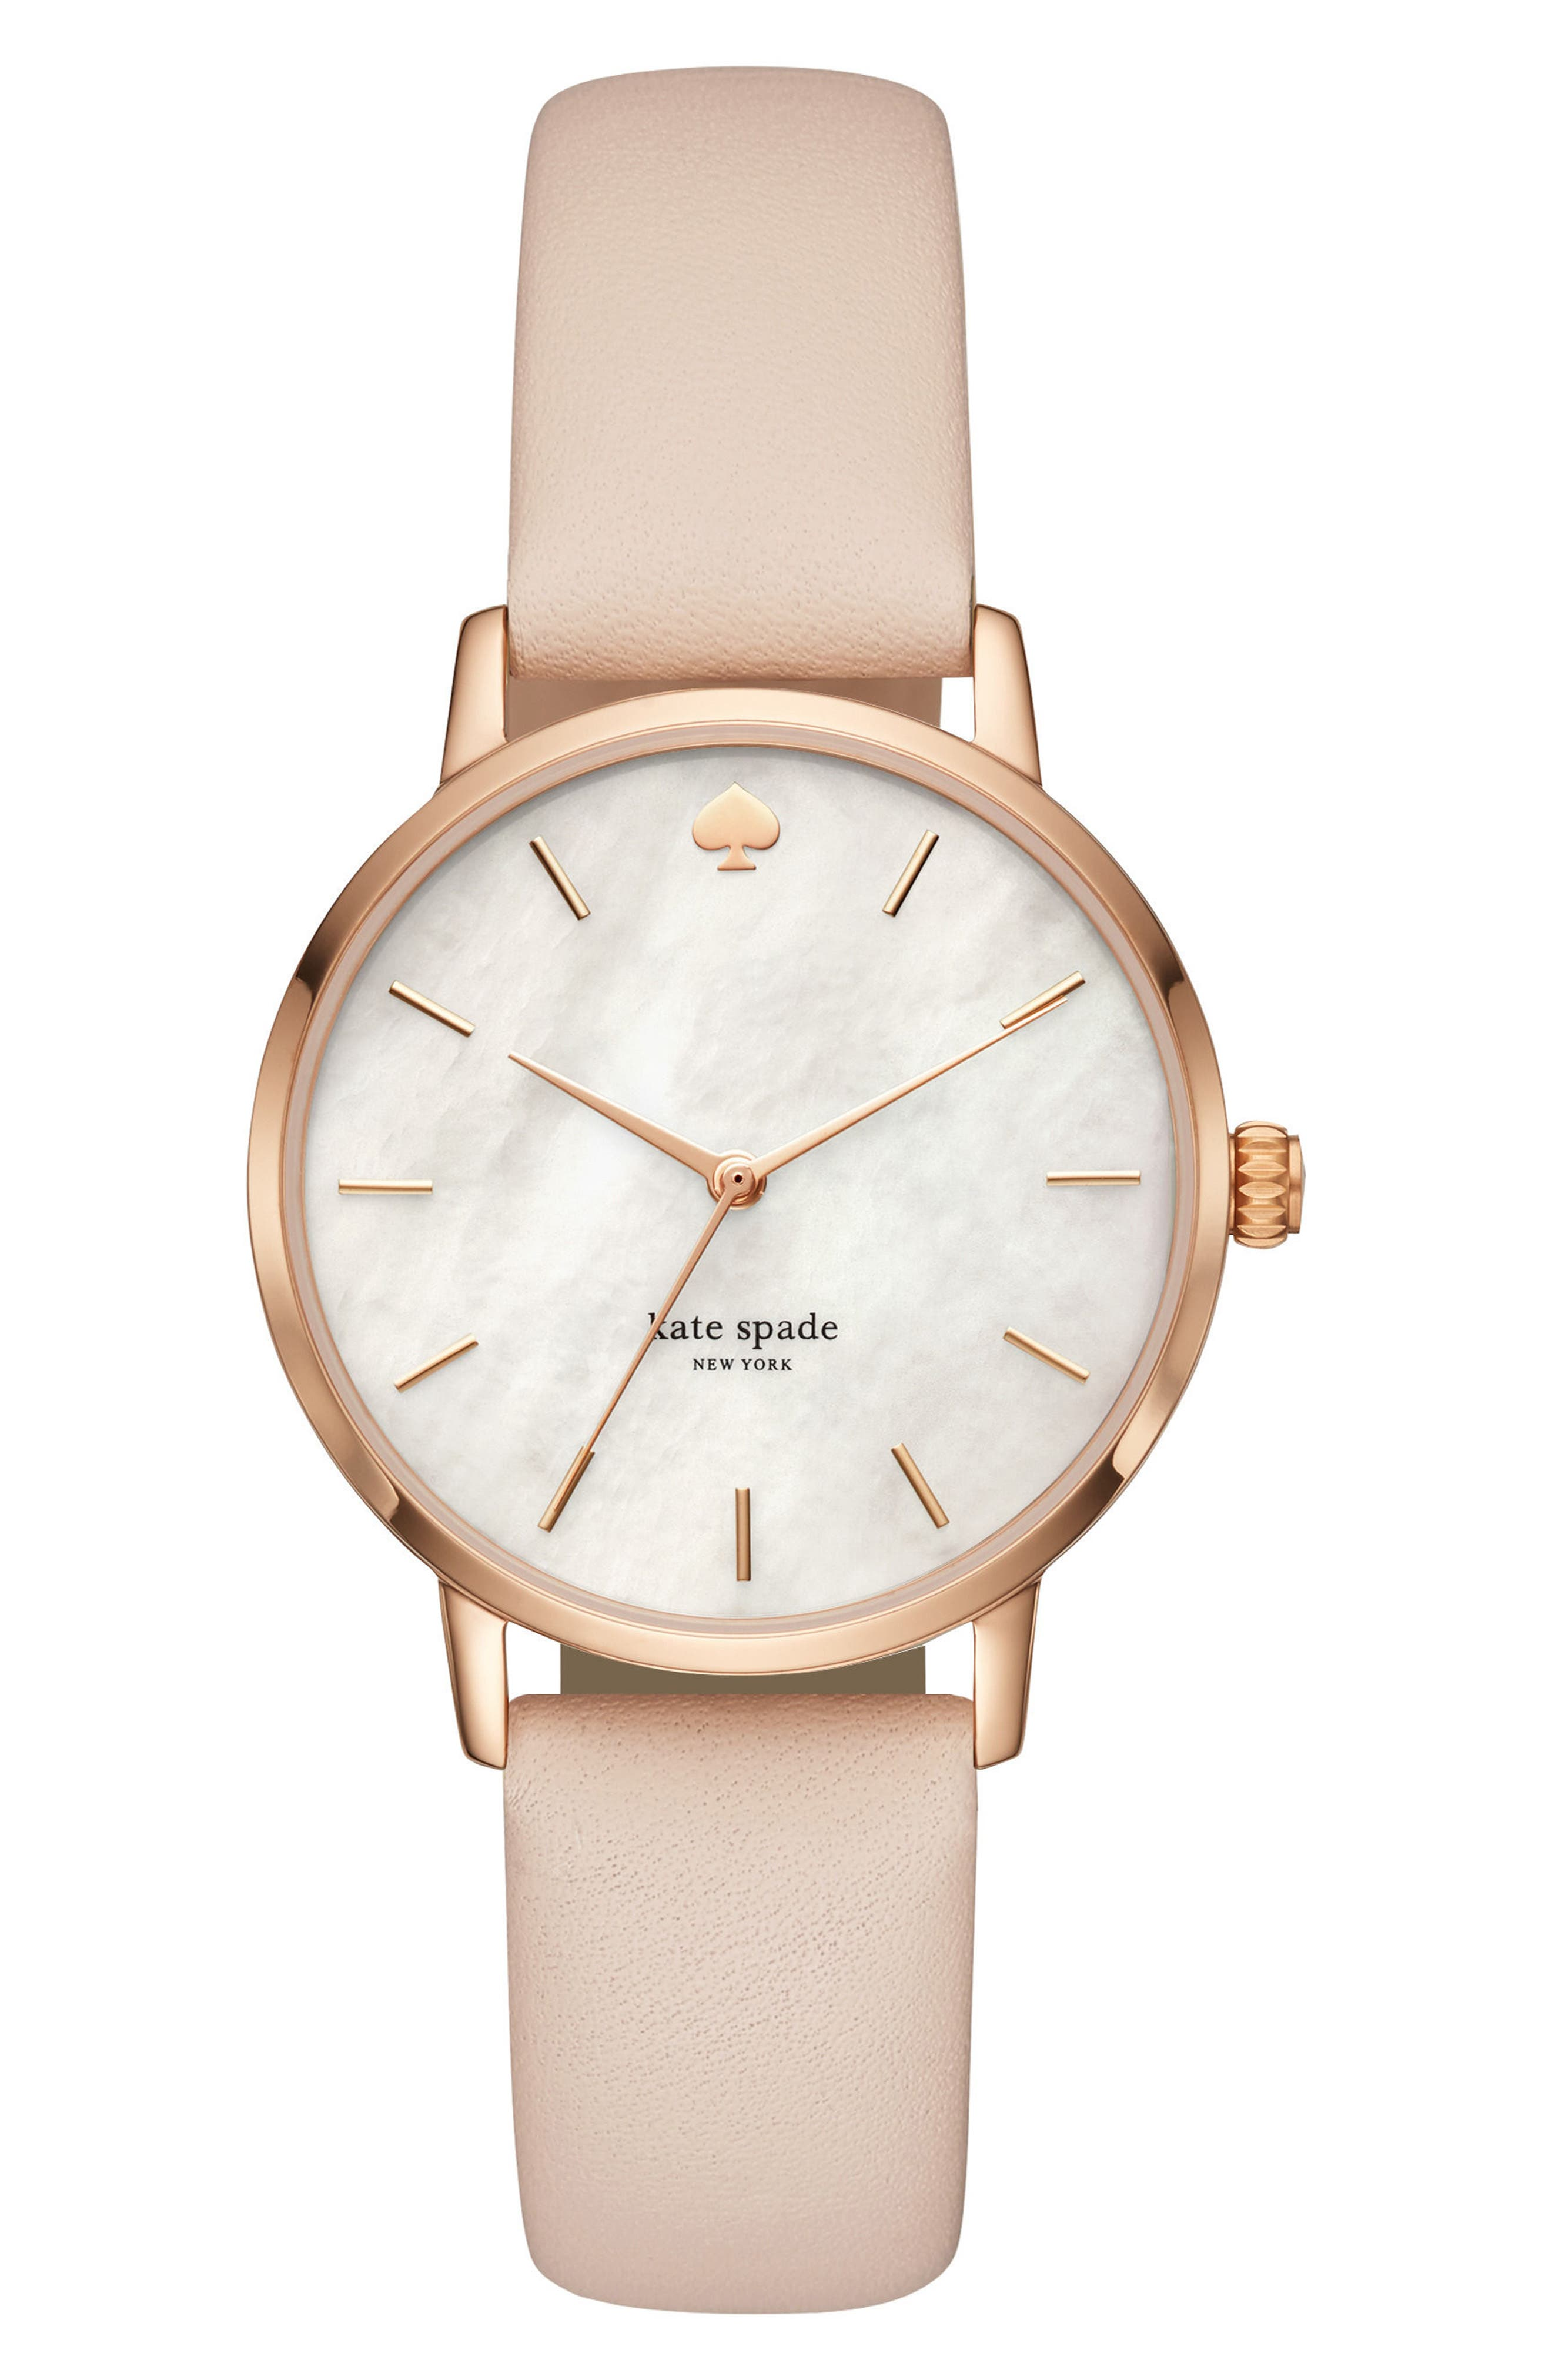 Main Image - kate spade new york metro leather strap watch, 34mm